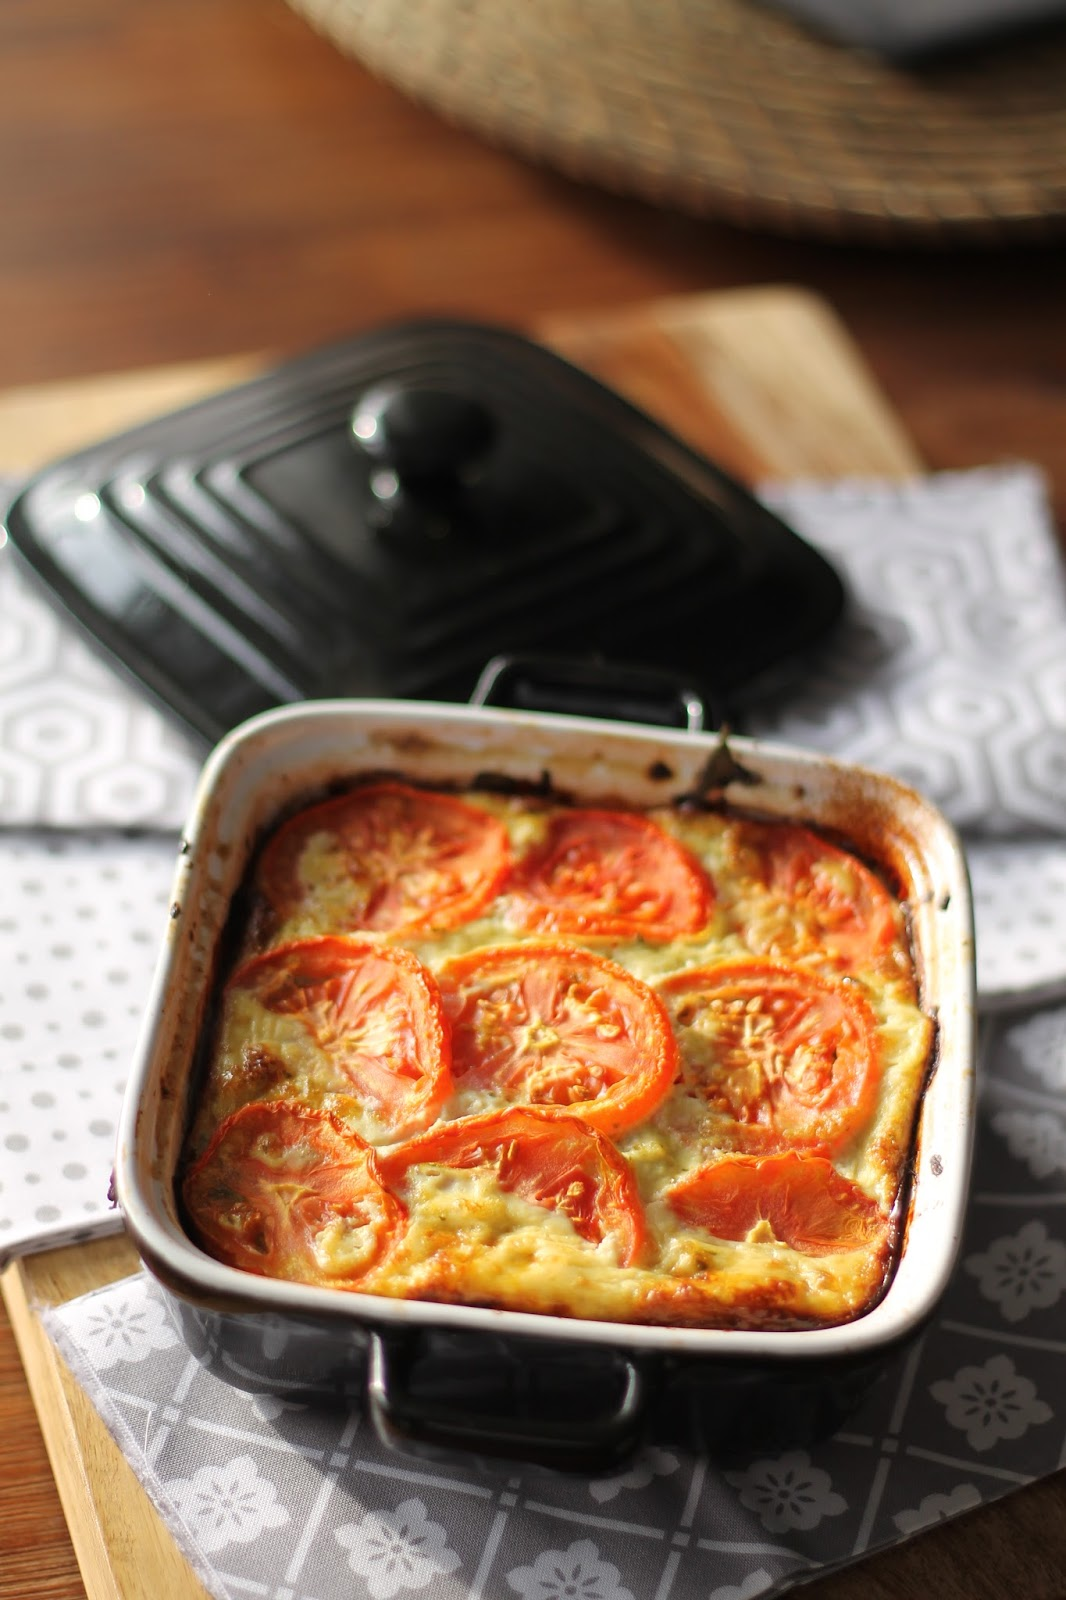 healthy recipe, egg bake, quick party food, easy side dish, dairy free, grain free